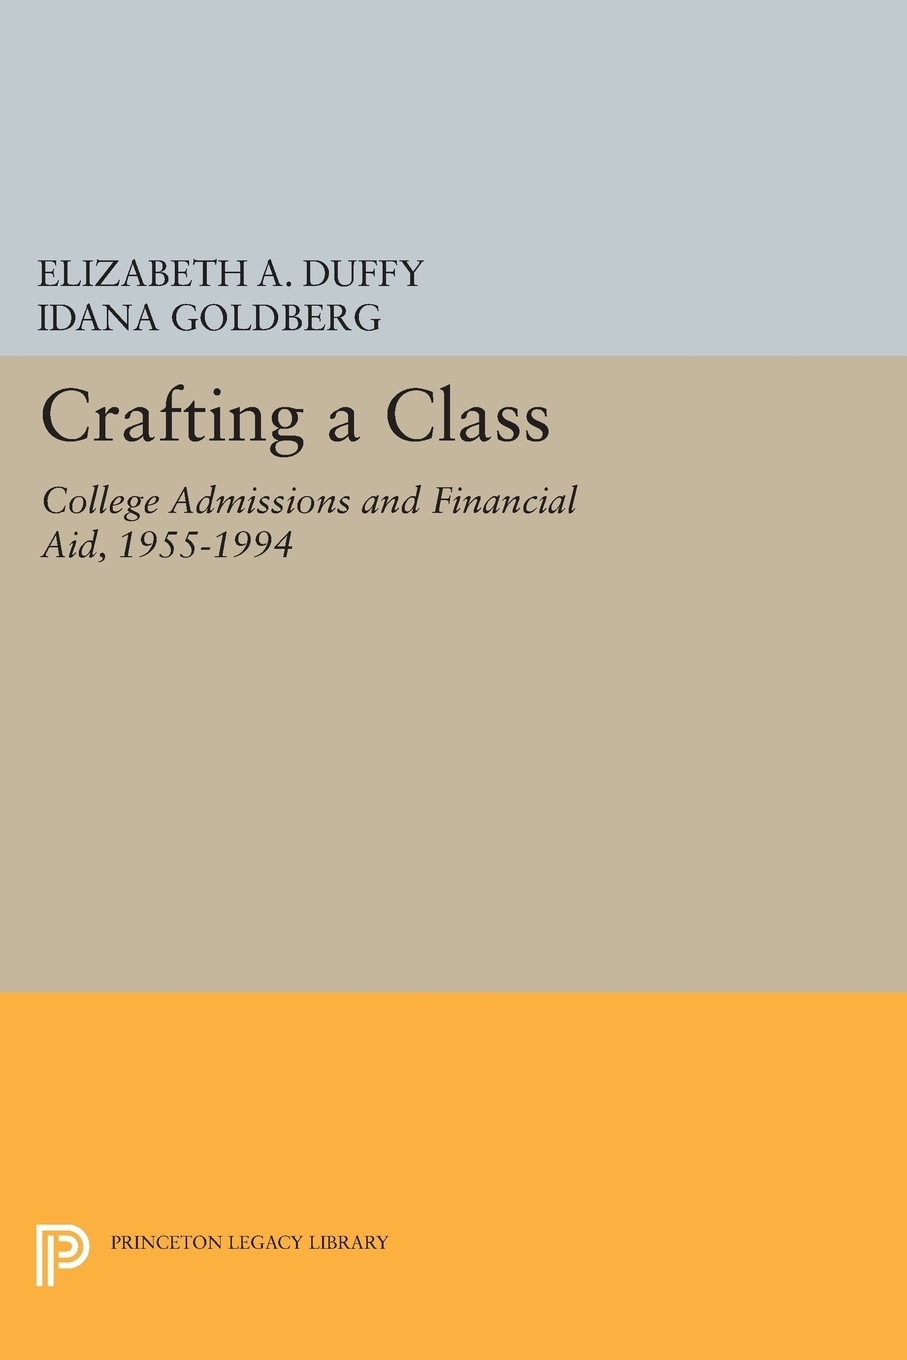 Crafting a Class. College Admissions and Financial Aid, 1955-1994 9780691603551